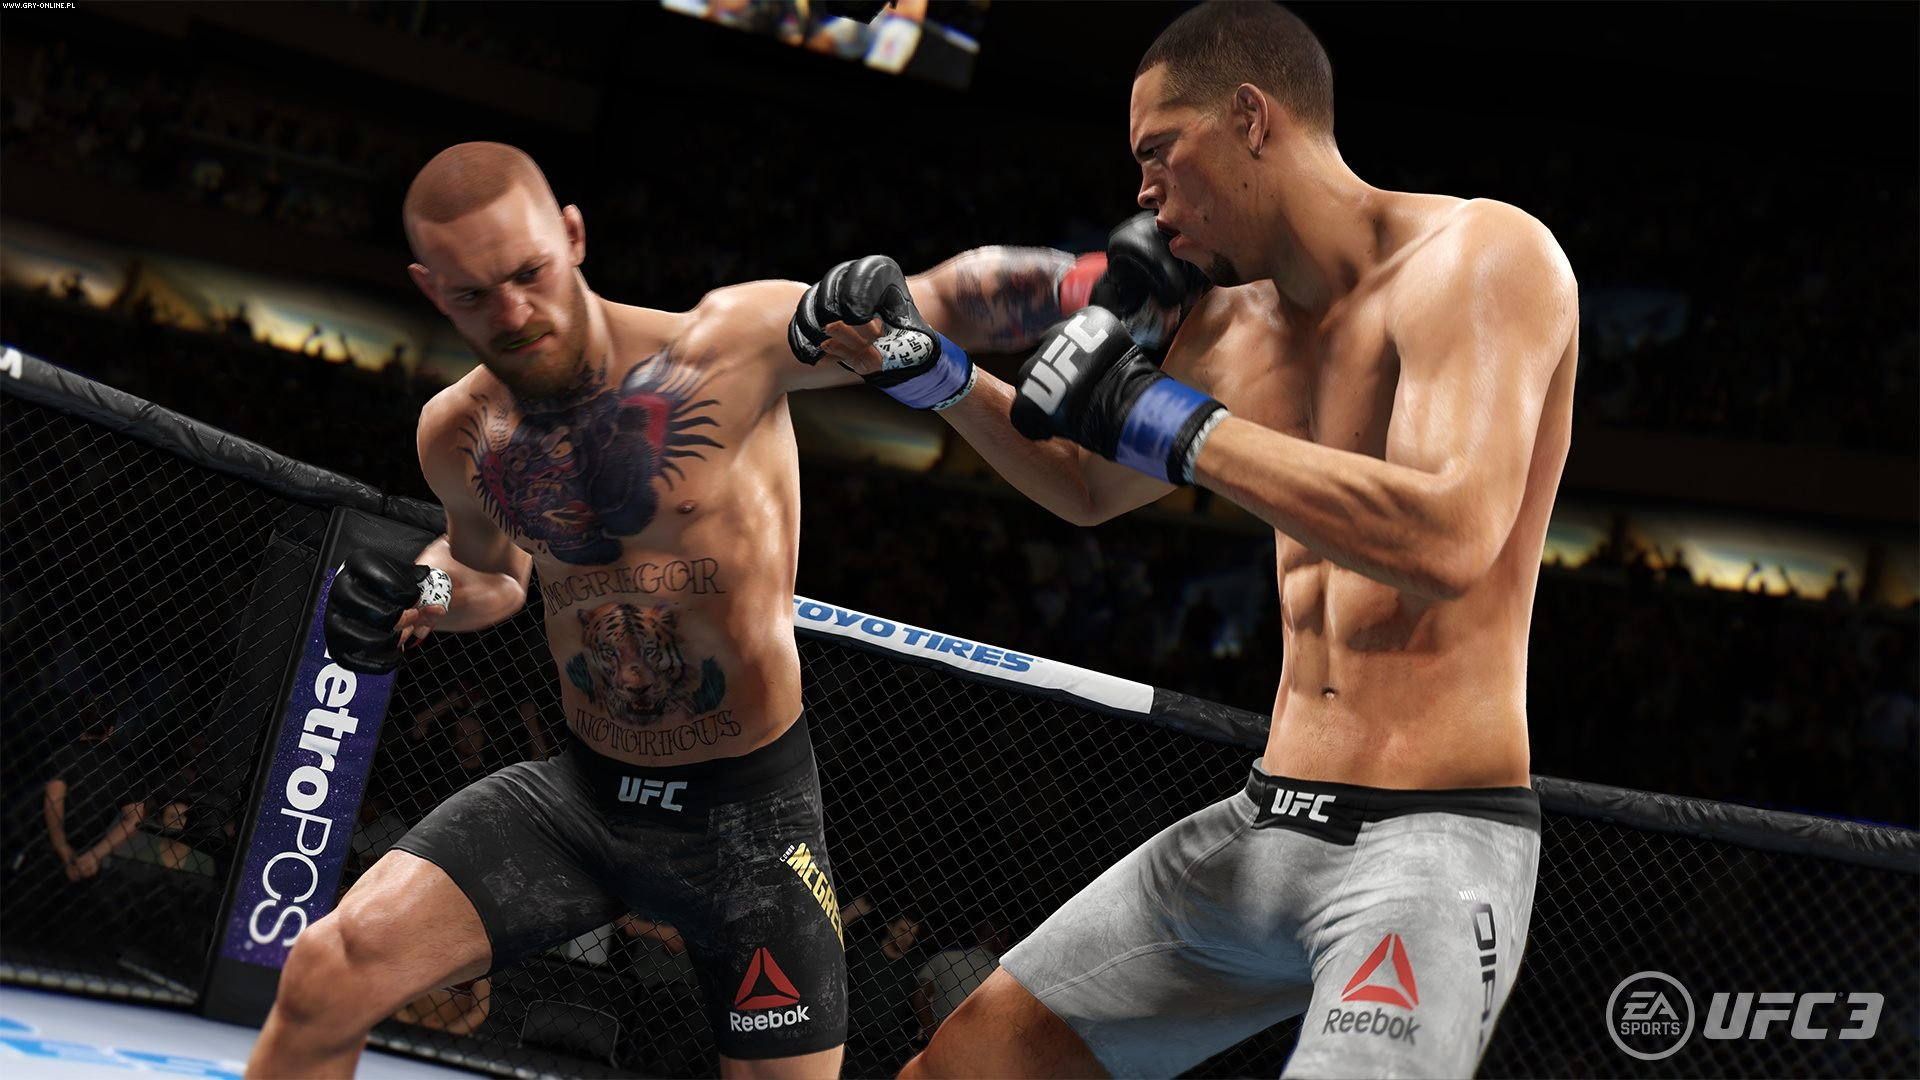 EA Sports UFC 3 PS4, XONE Games Image 7/8, EA Sports, Electronic Arts Inc.